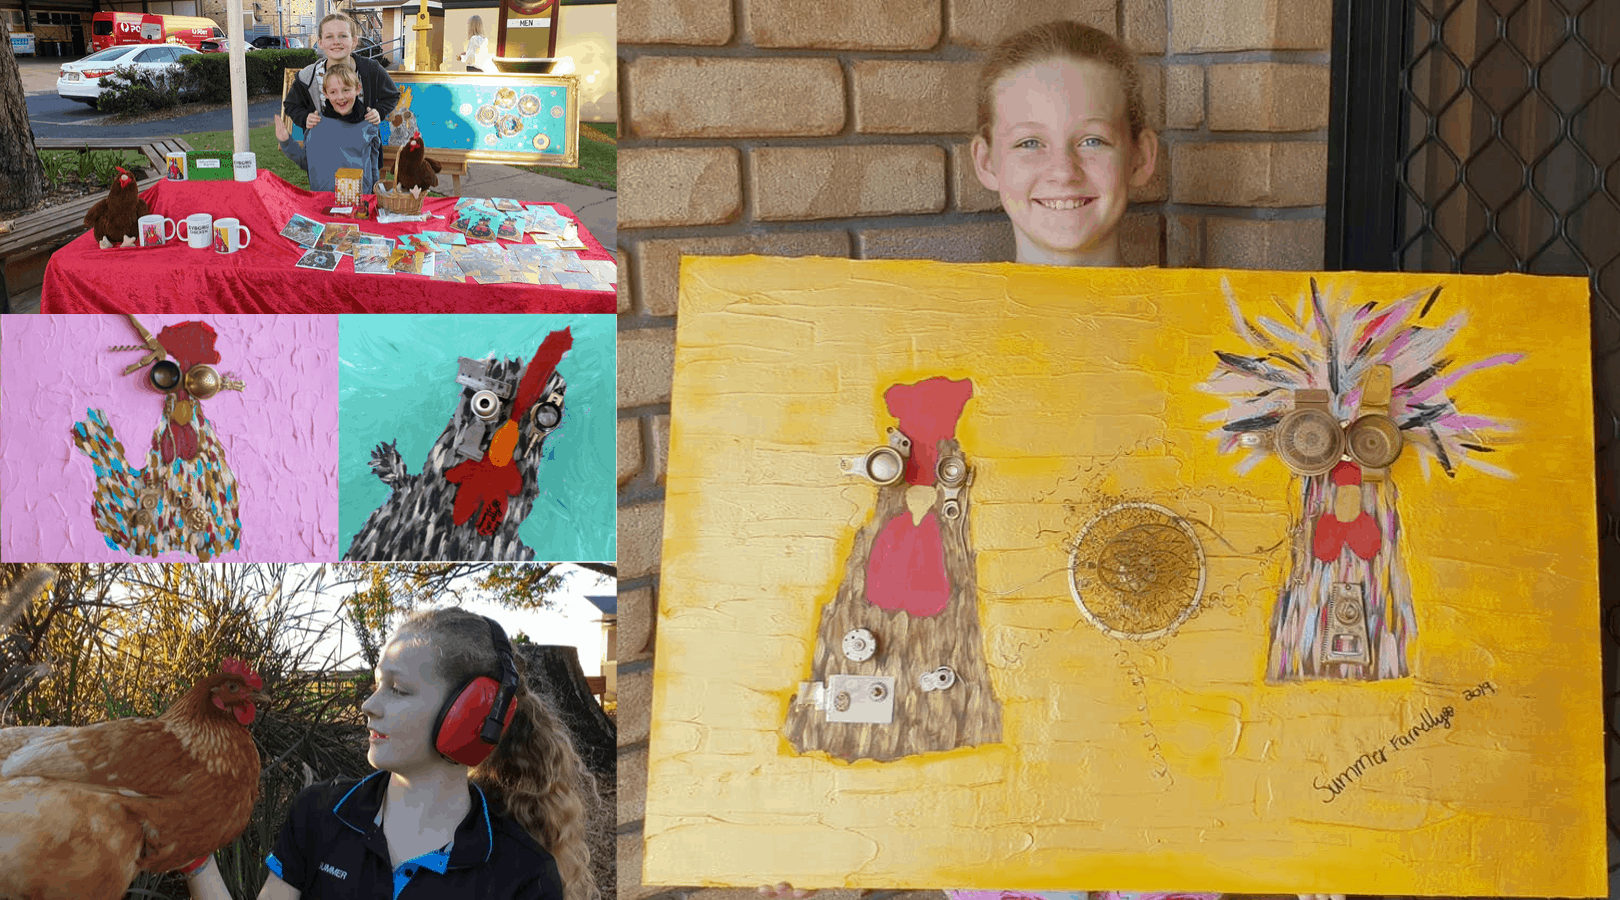 Collage of images featuring 12 year old artist Summer Farrelly and three of her artworks of cyborg chickens